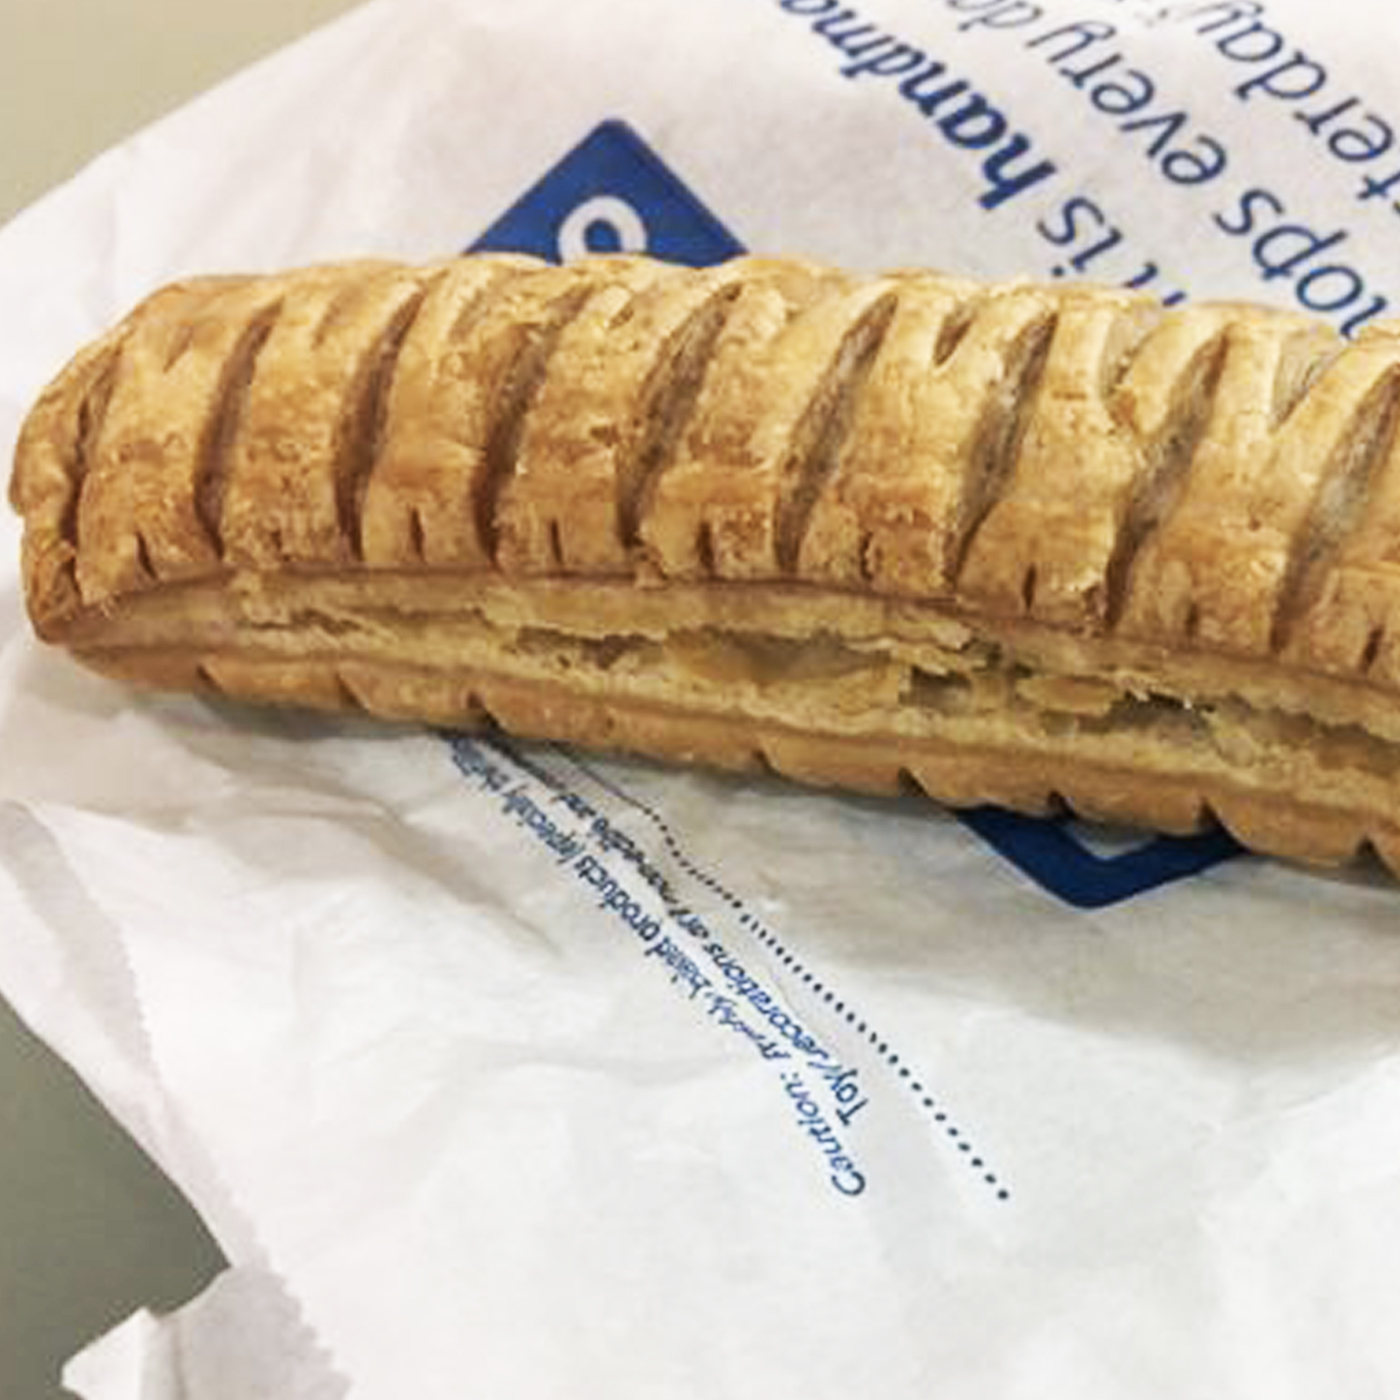 The Moral Quandry of Greggs Vegan Sausage Rolls